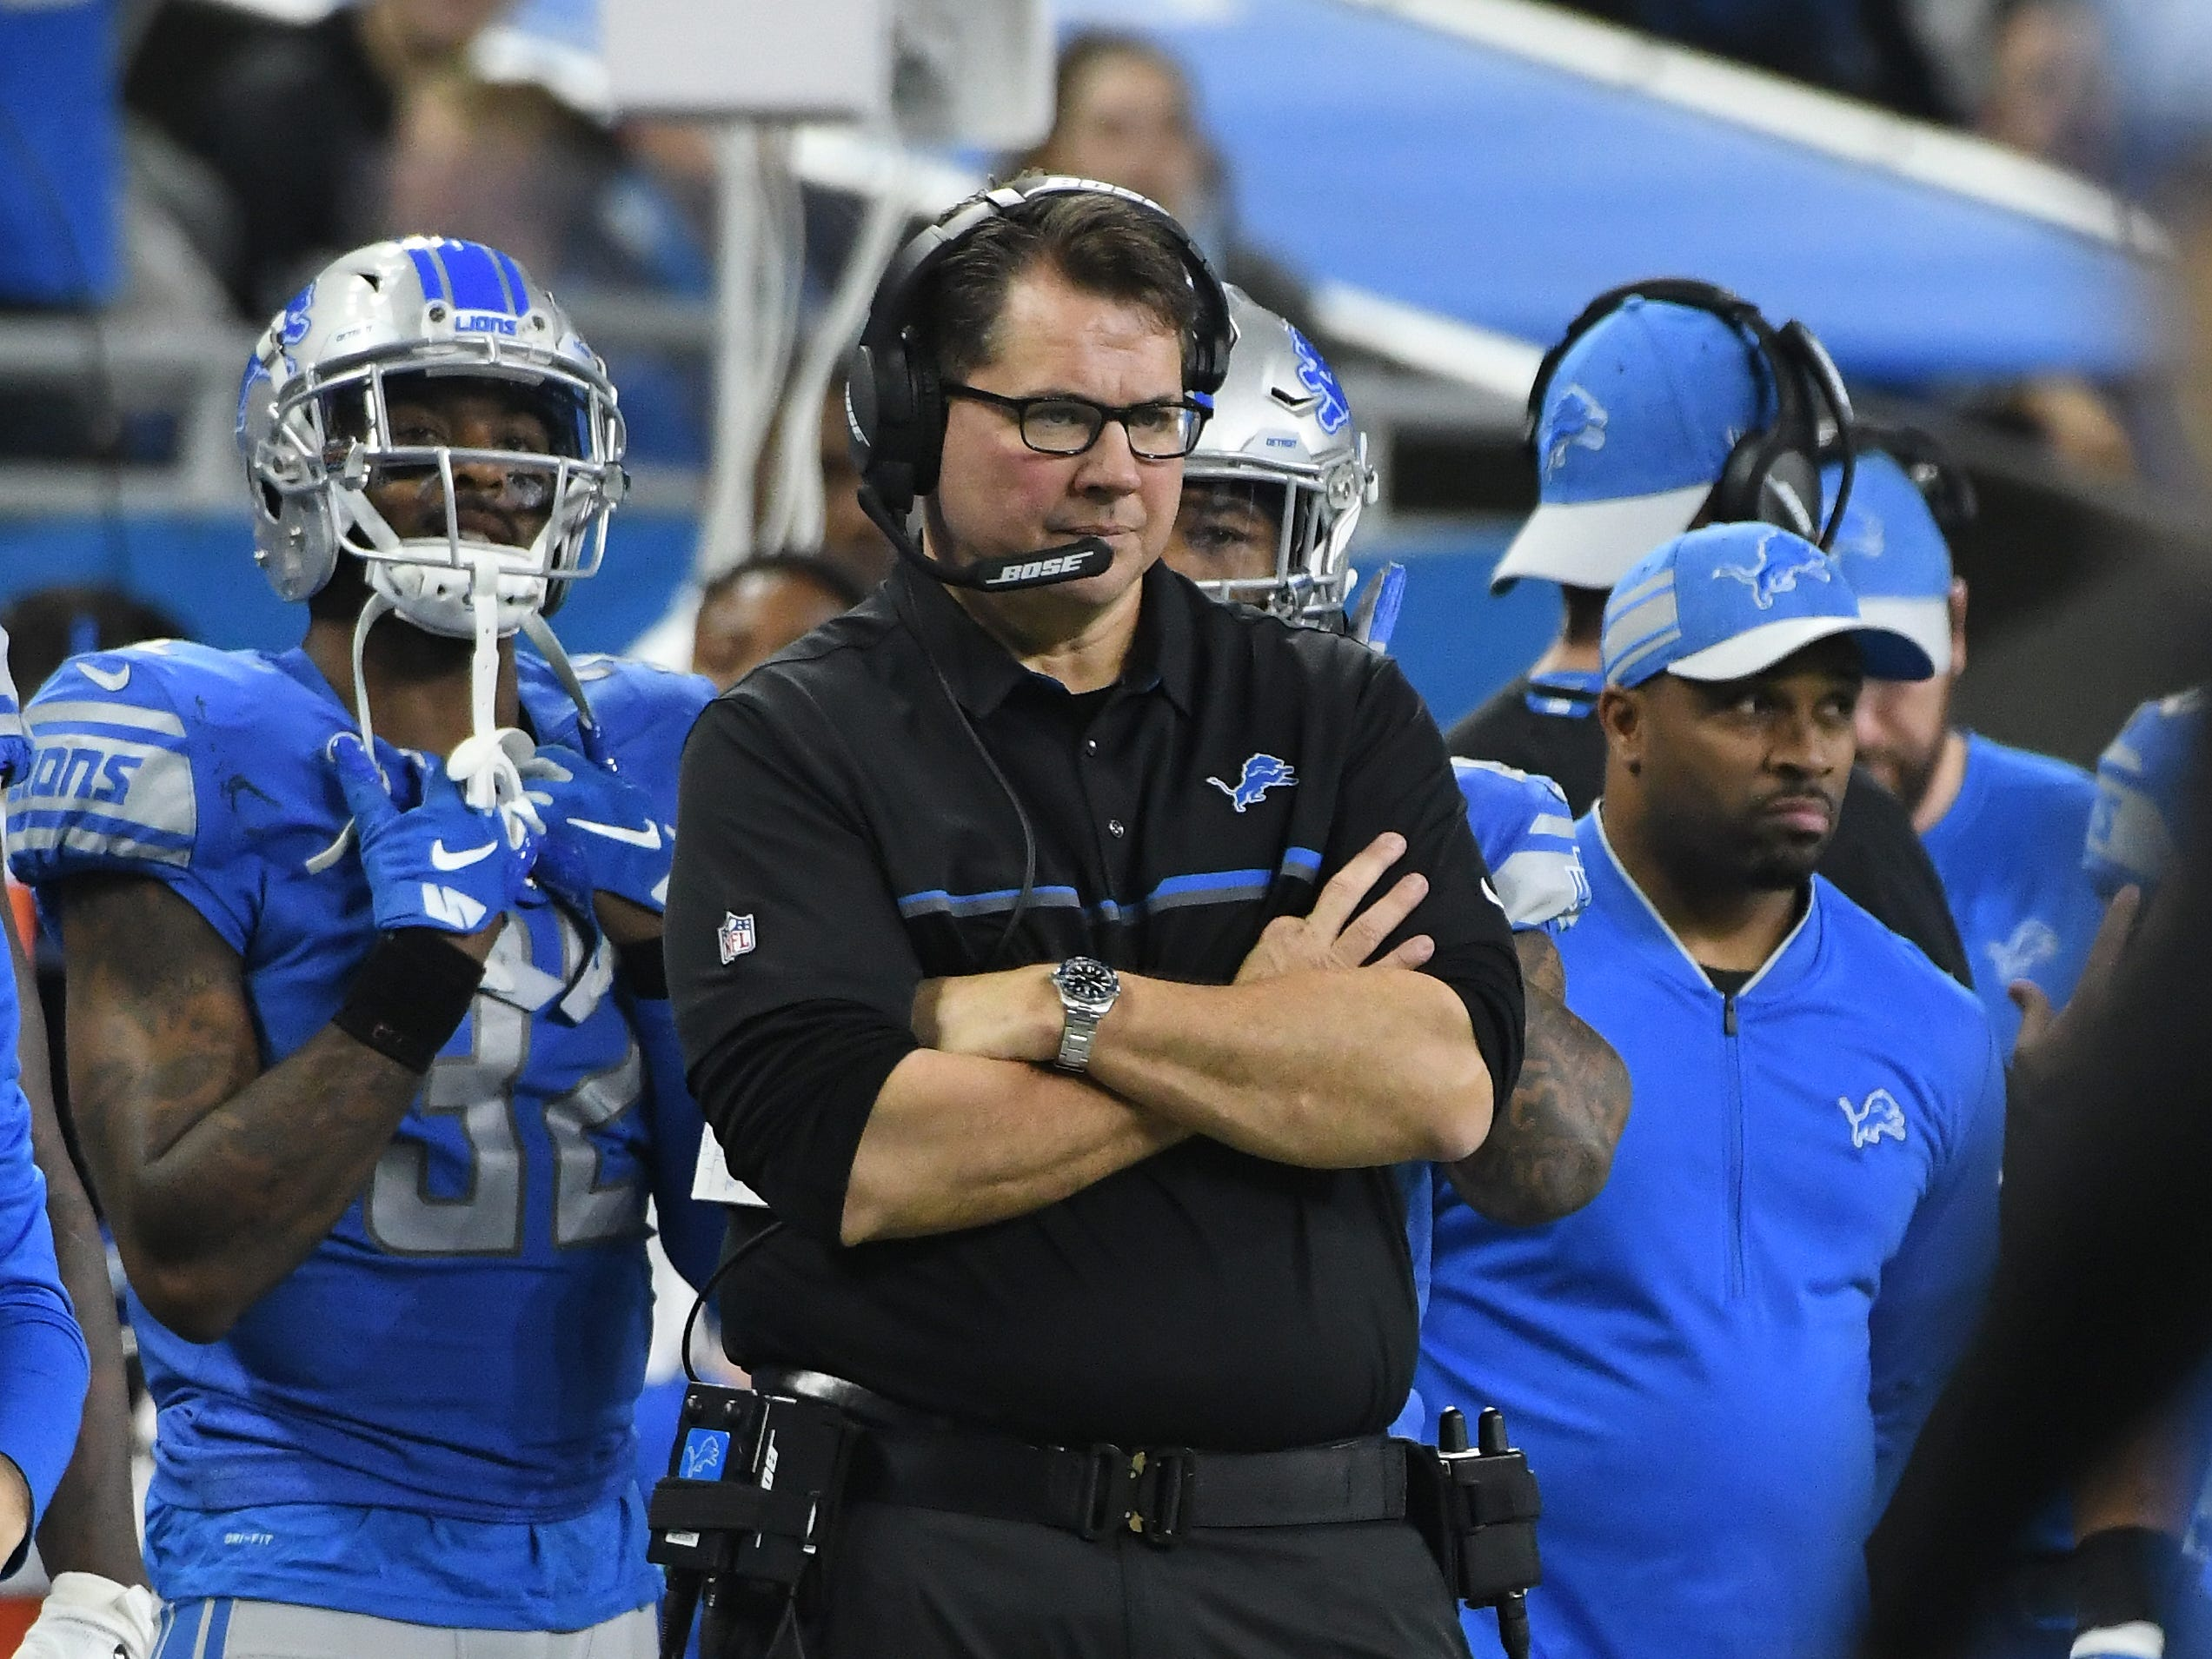 Lions linebacker coach Al Golden on the sidelines in the fourth quarter.